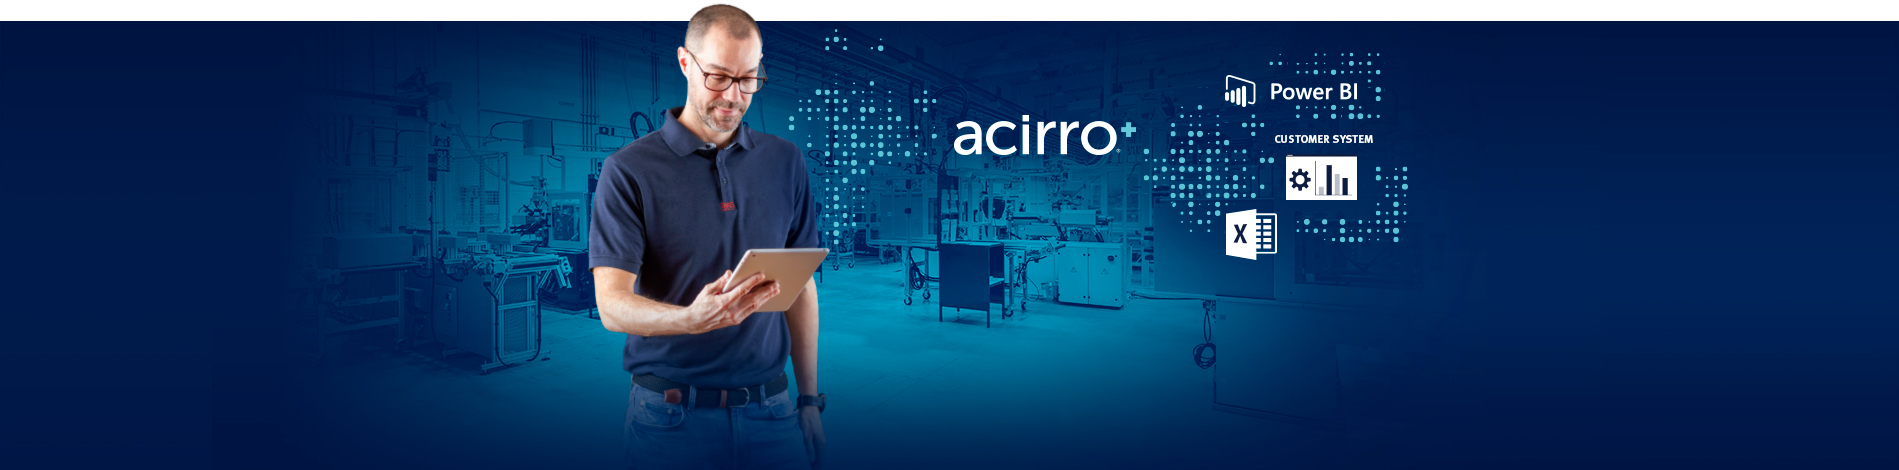 Get insights from the cloud with acirro